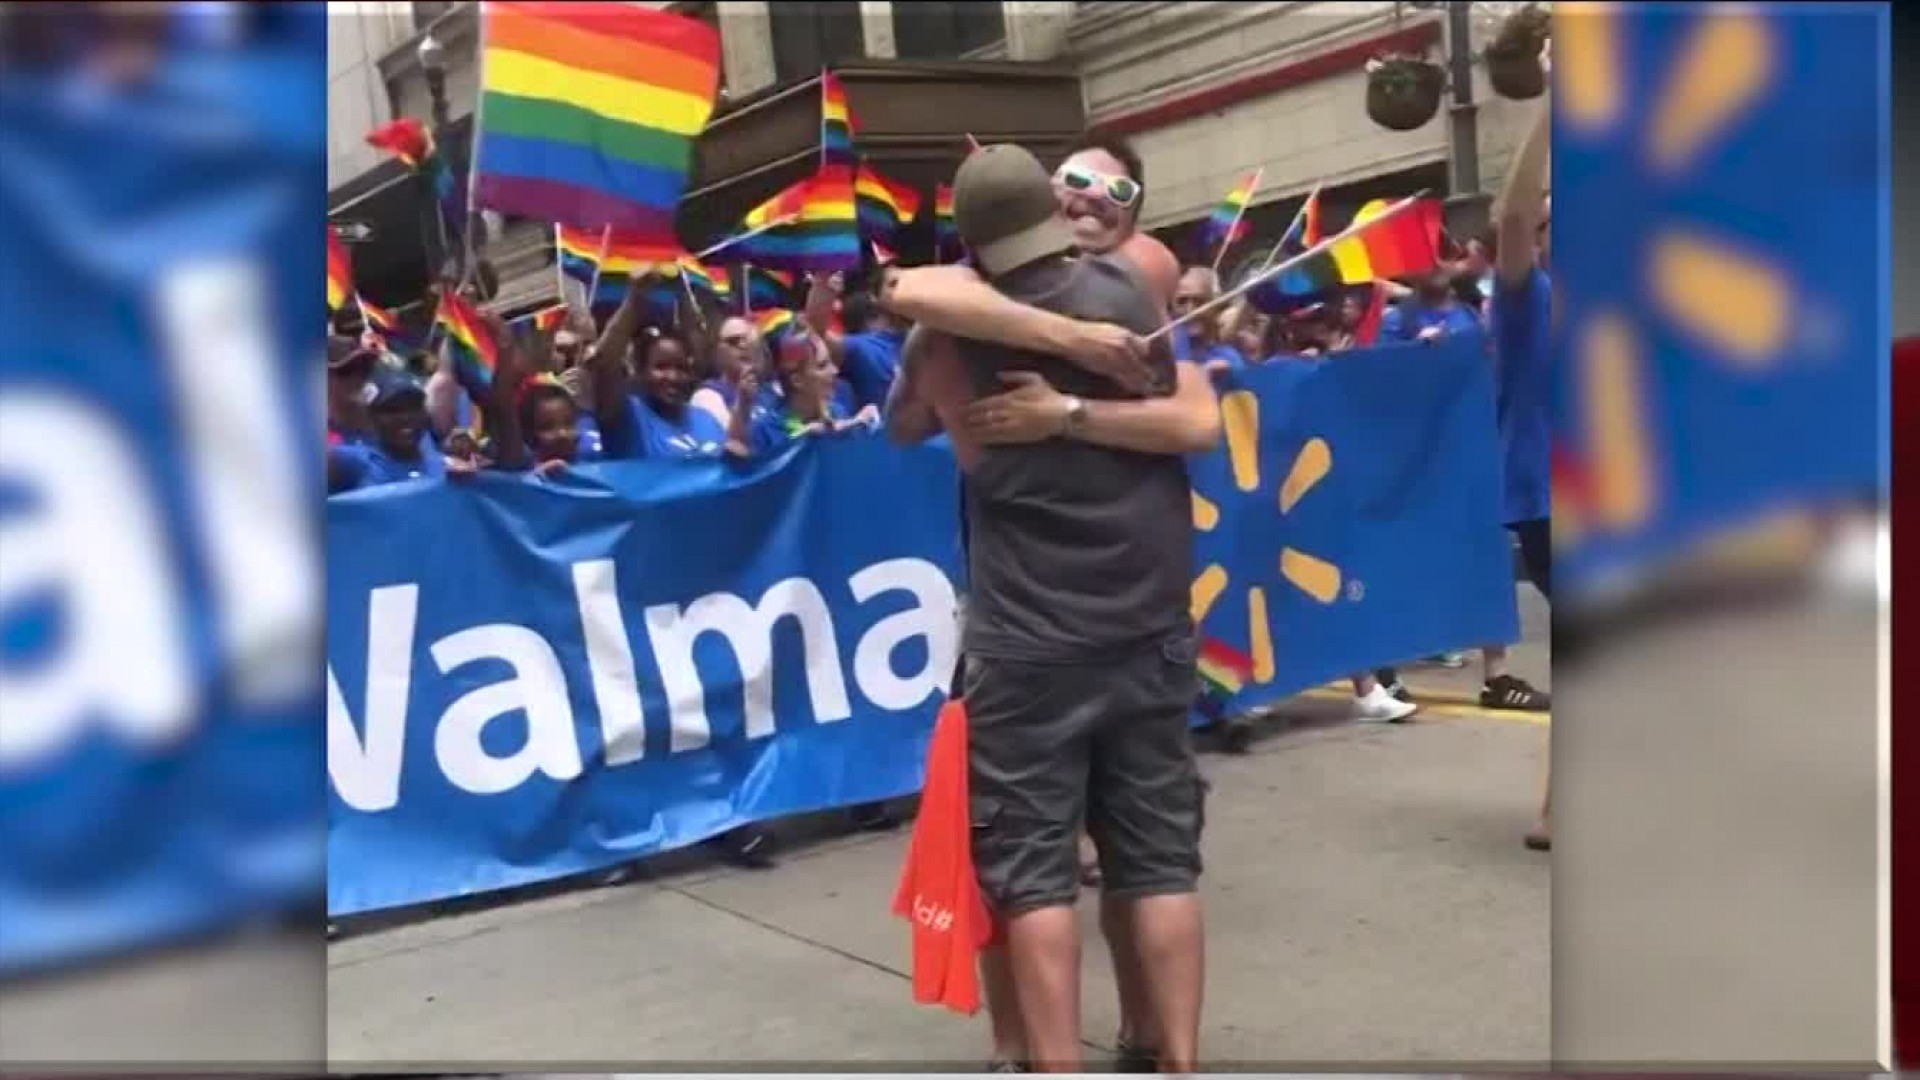 Man goes viral after giving hundreds of free 'Dad Hugs' at Pride parade